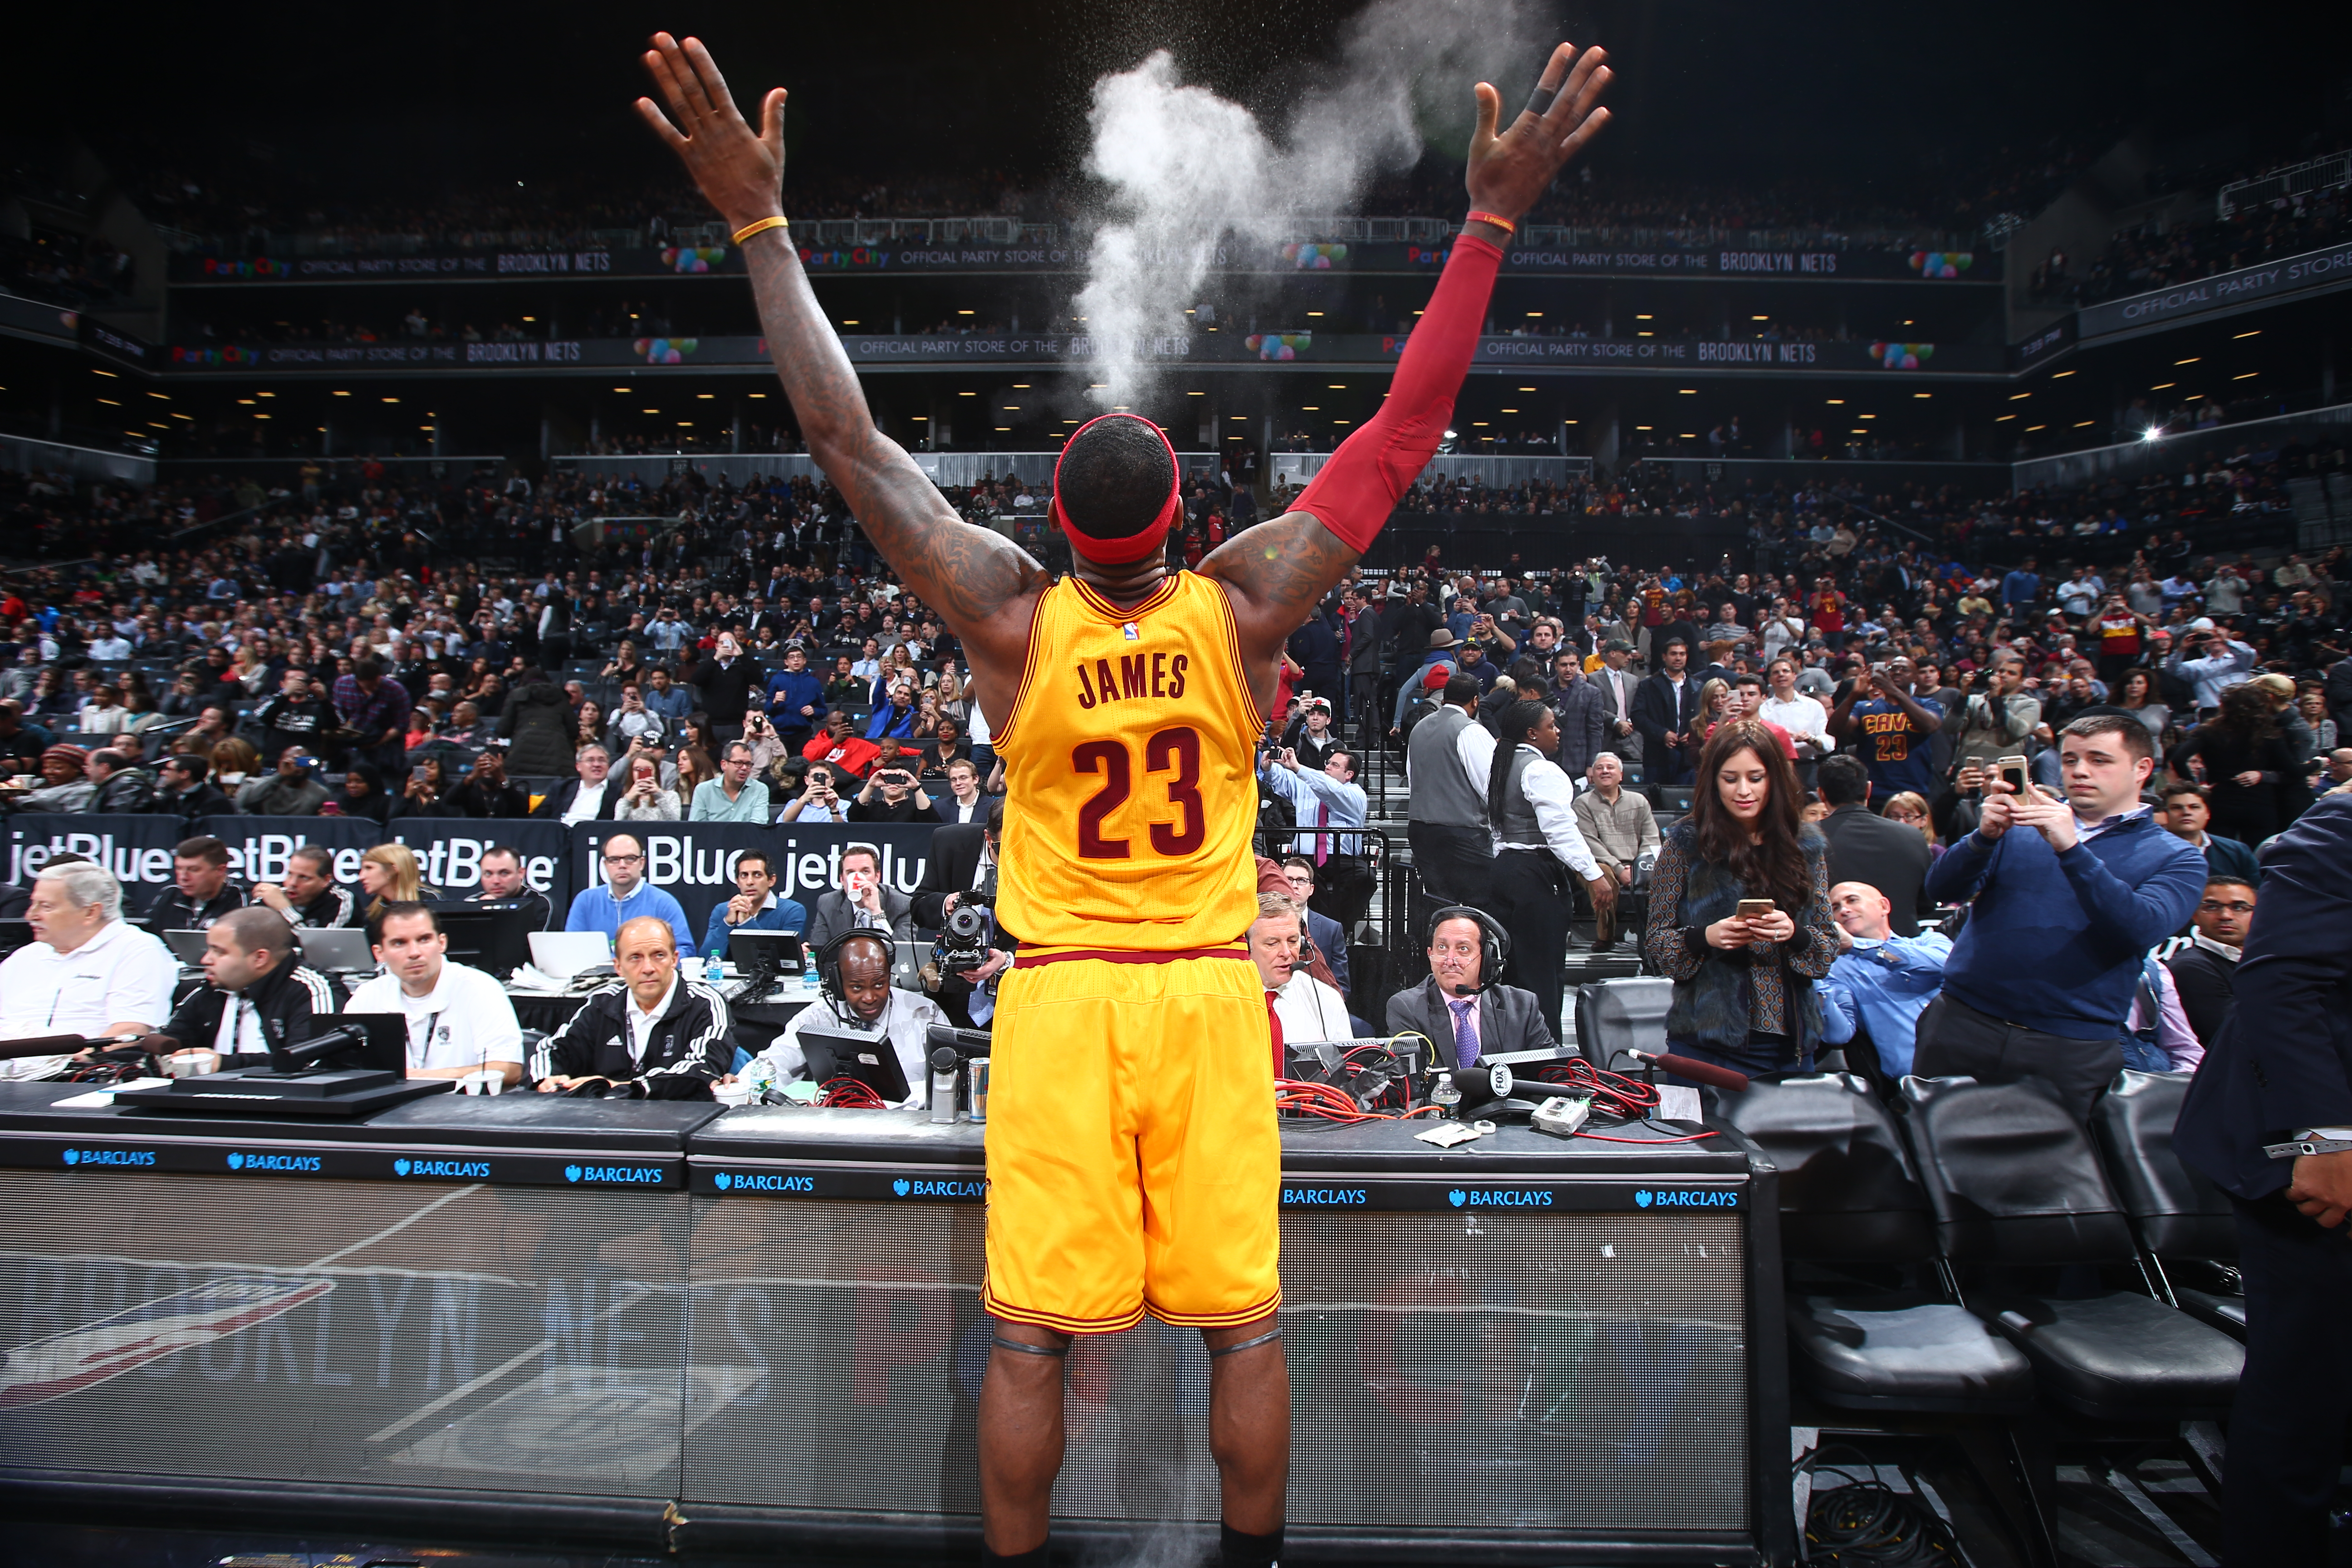 LeBron James of the Cleveland Cavaliers does his chalk toss before the game against the Brooklyn Nets on December 8, 2014 at Barclays Center in Brooklyn, New York.